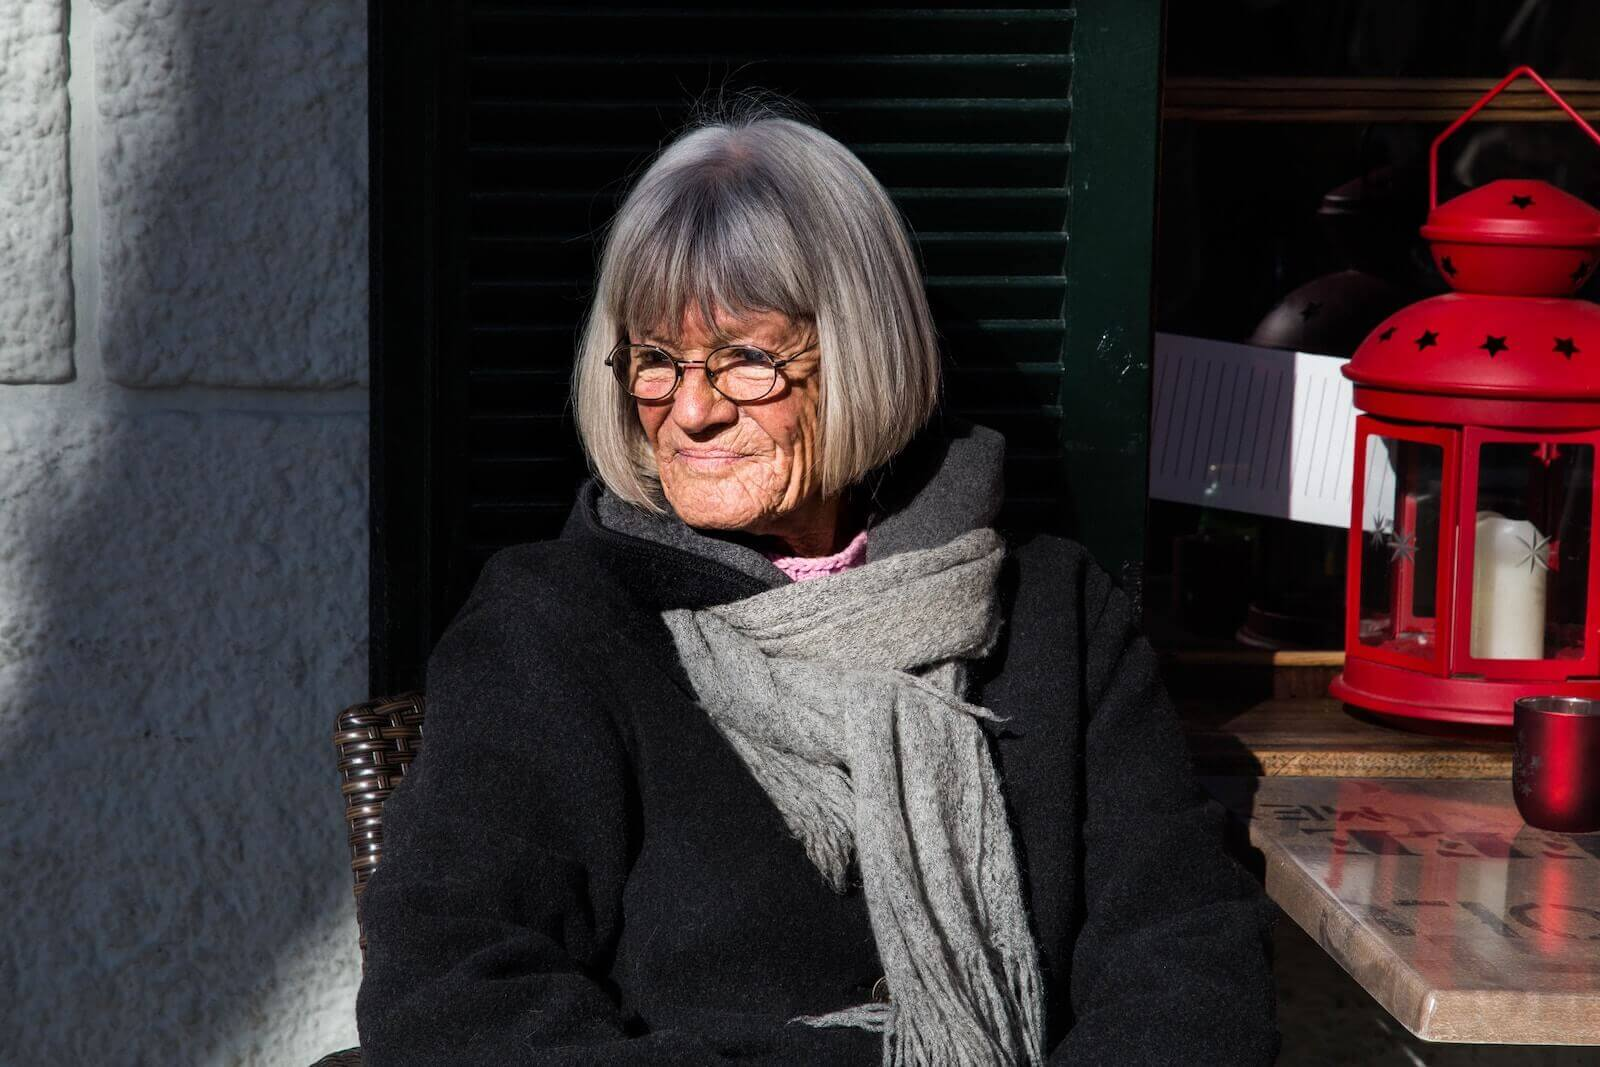 A lady with silver hair, a black jacket and a gray scarf, sitting at a table outside in the sunlight